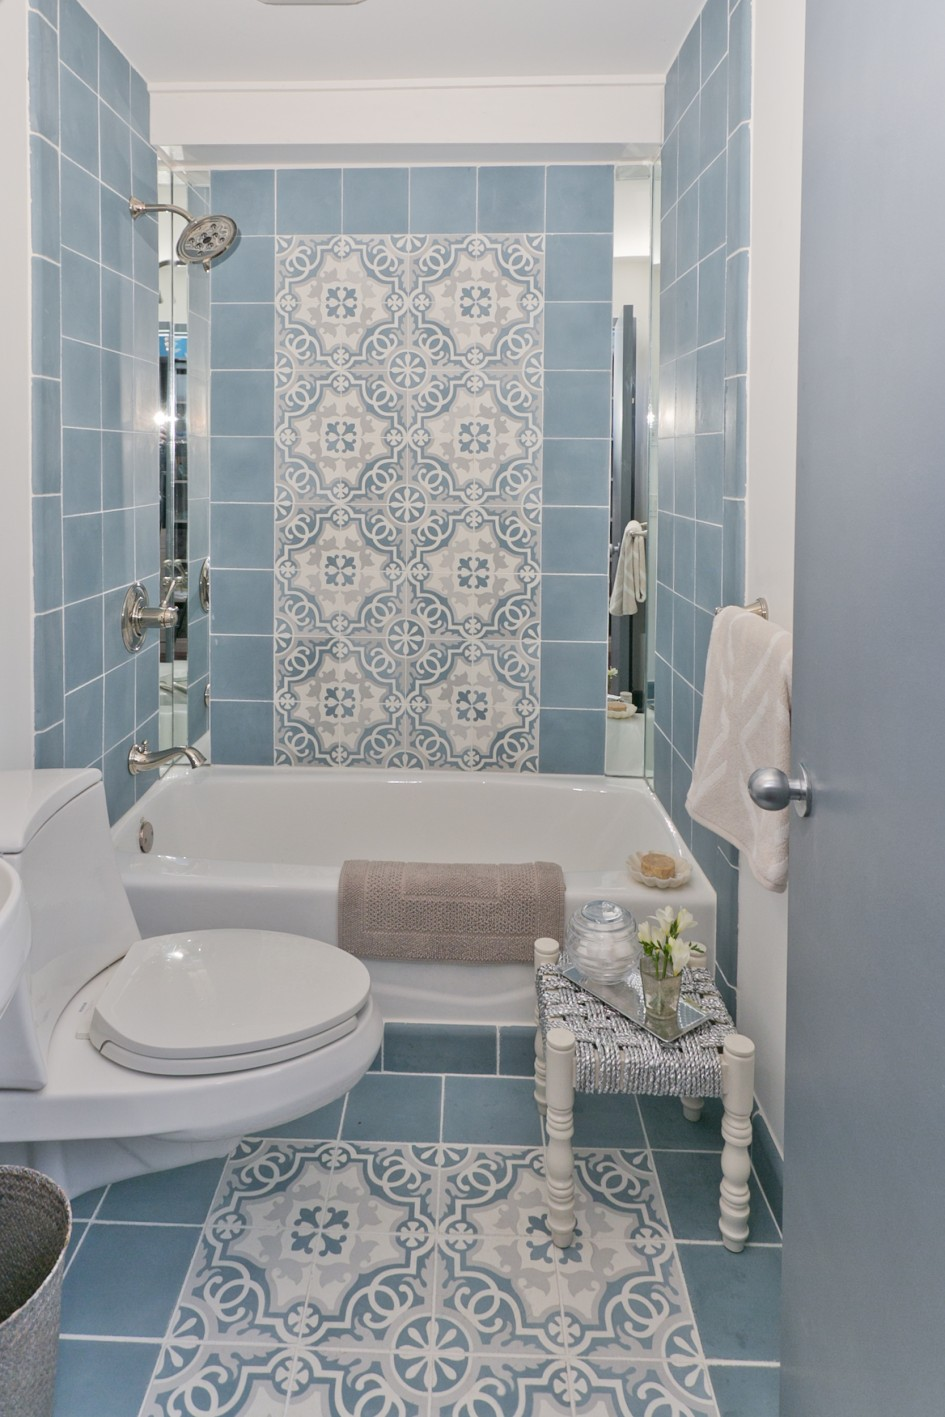 40 vintage blue bathroom tiles ideas and pictures for Salle de bain faience bleu